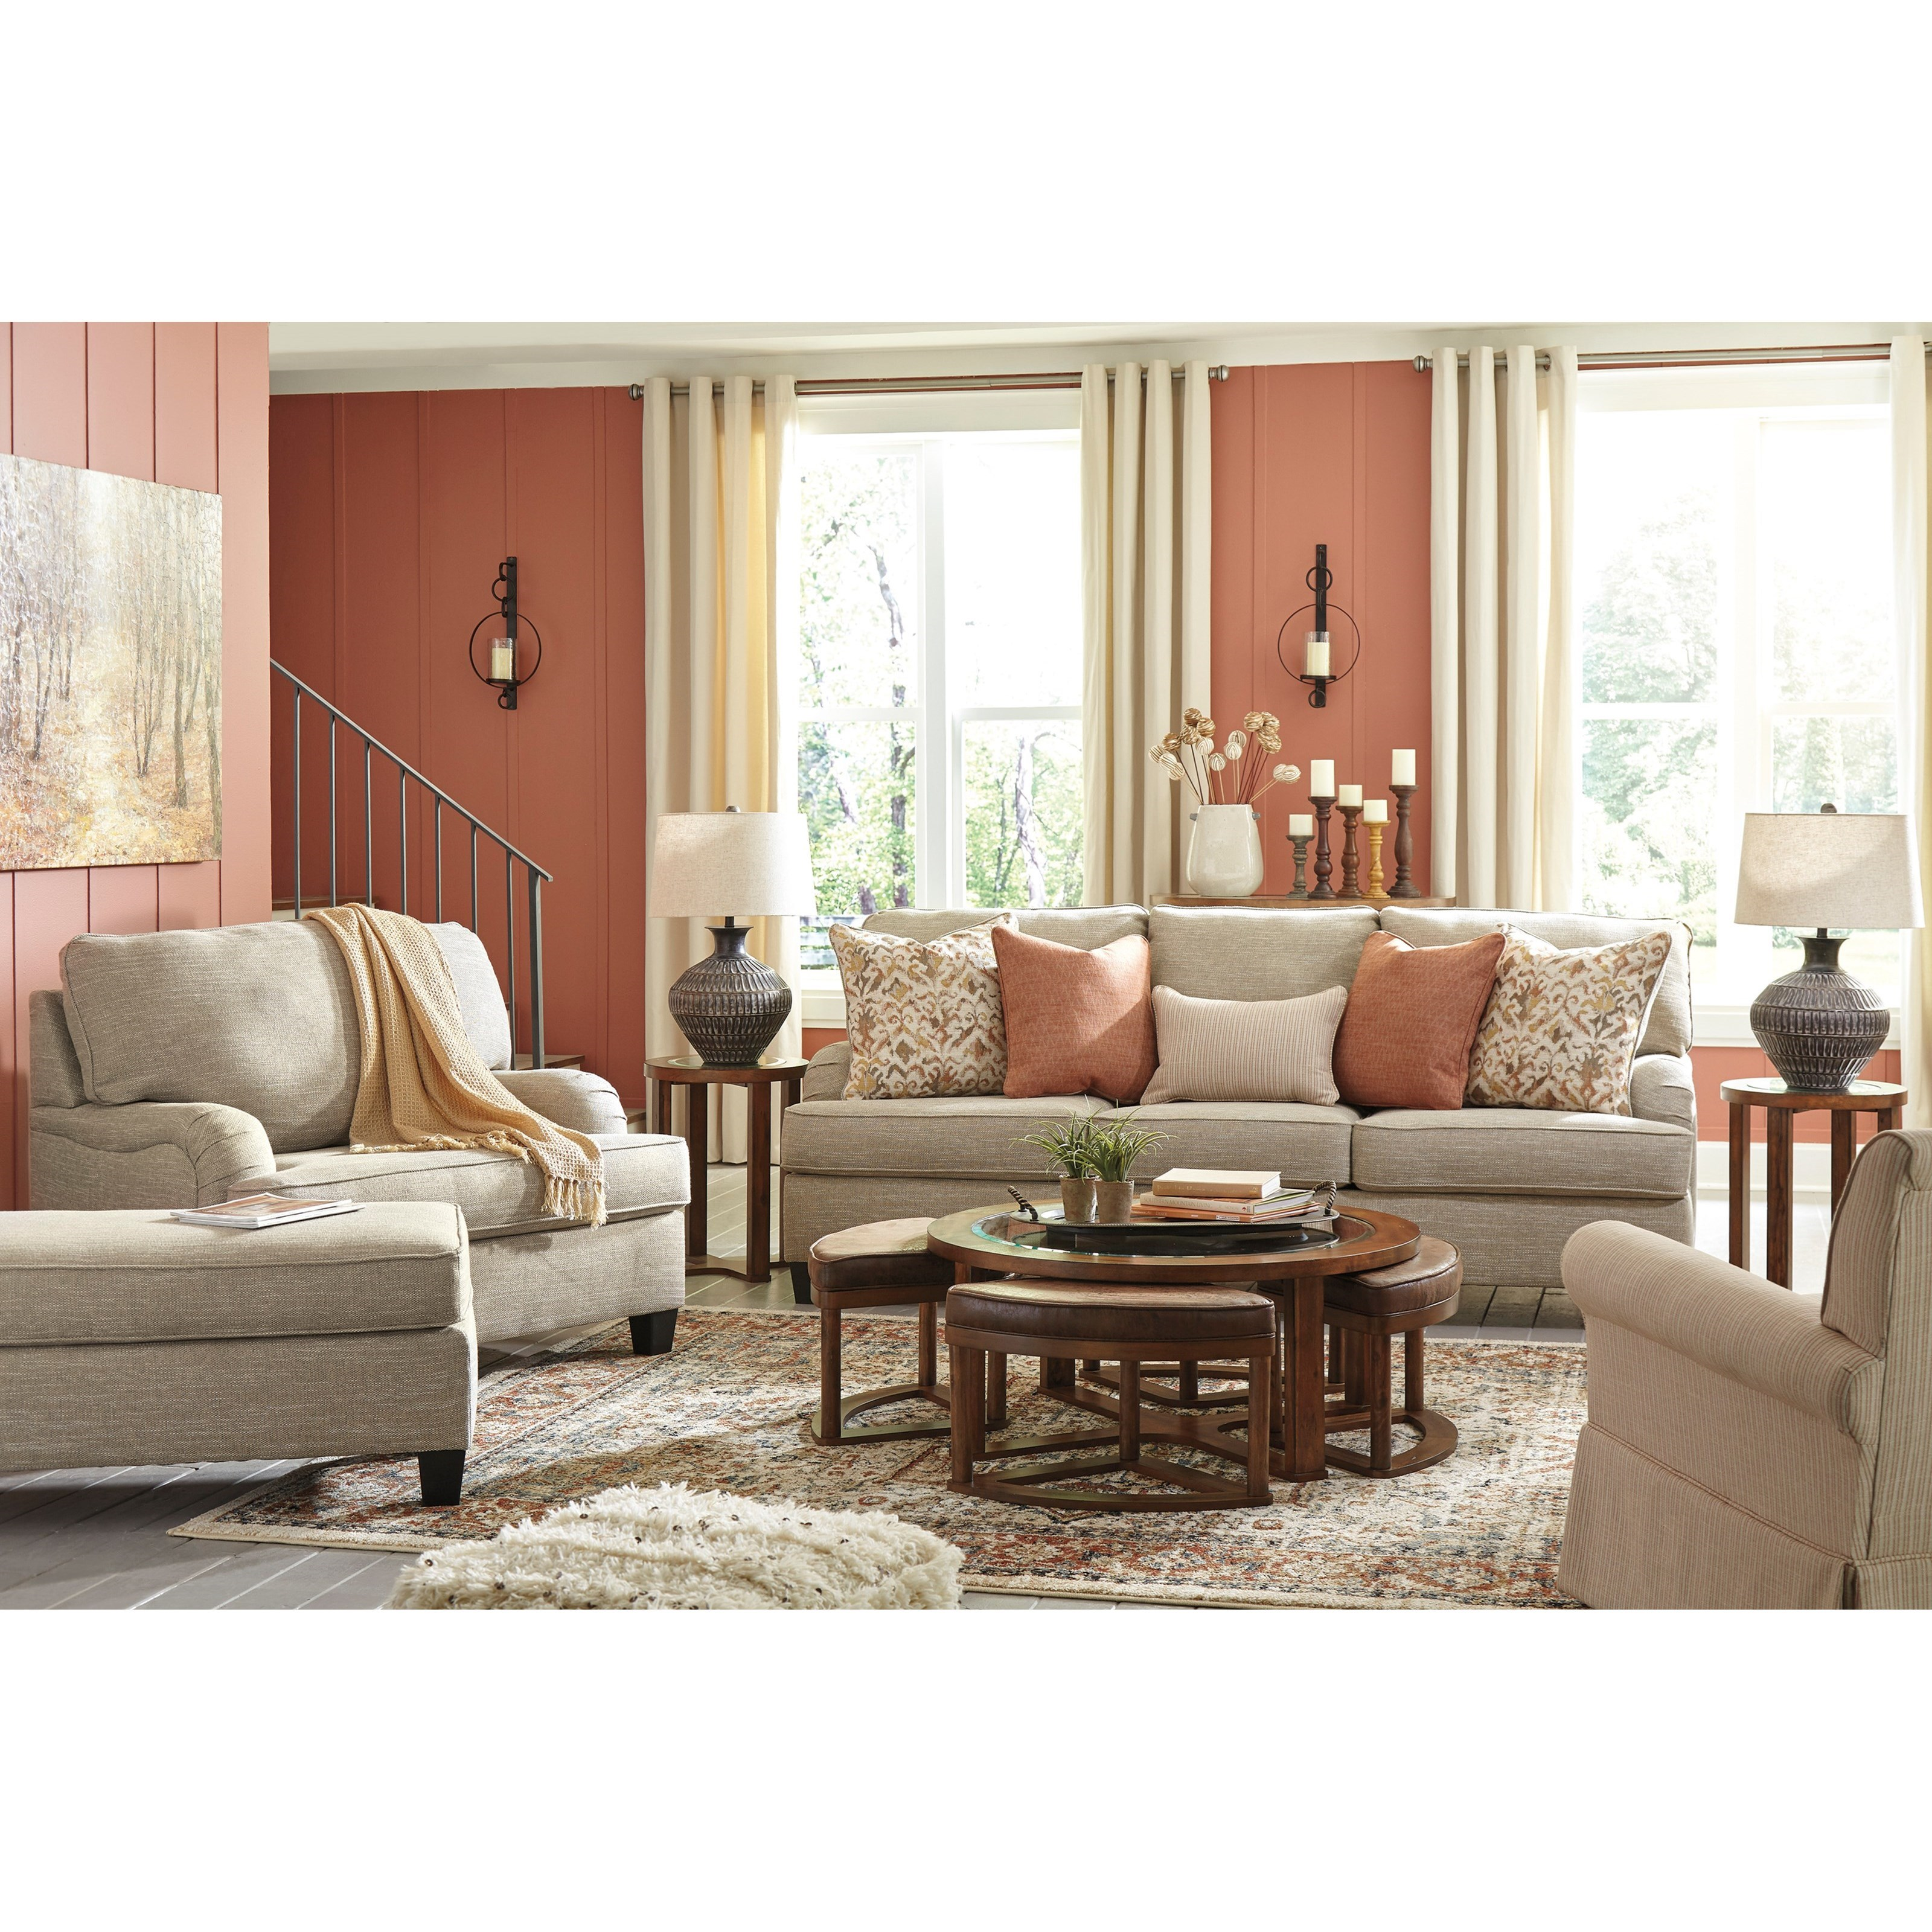 Almanza Living Room Group by Signature Design by Ashley at Beds N Stuff